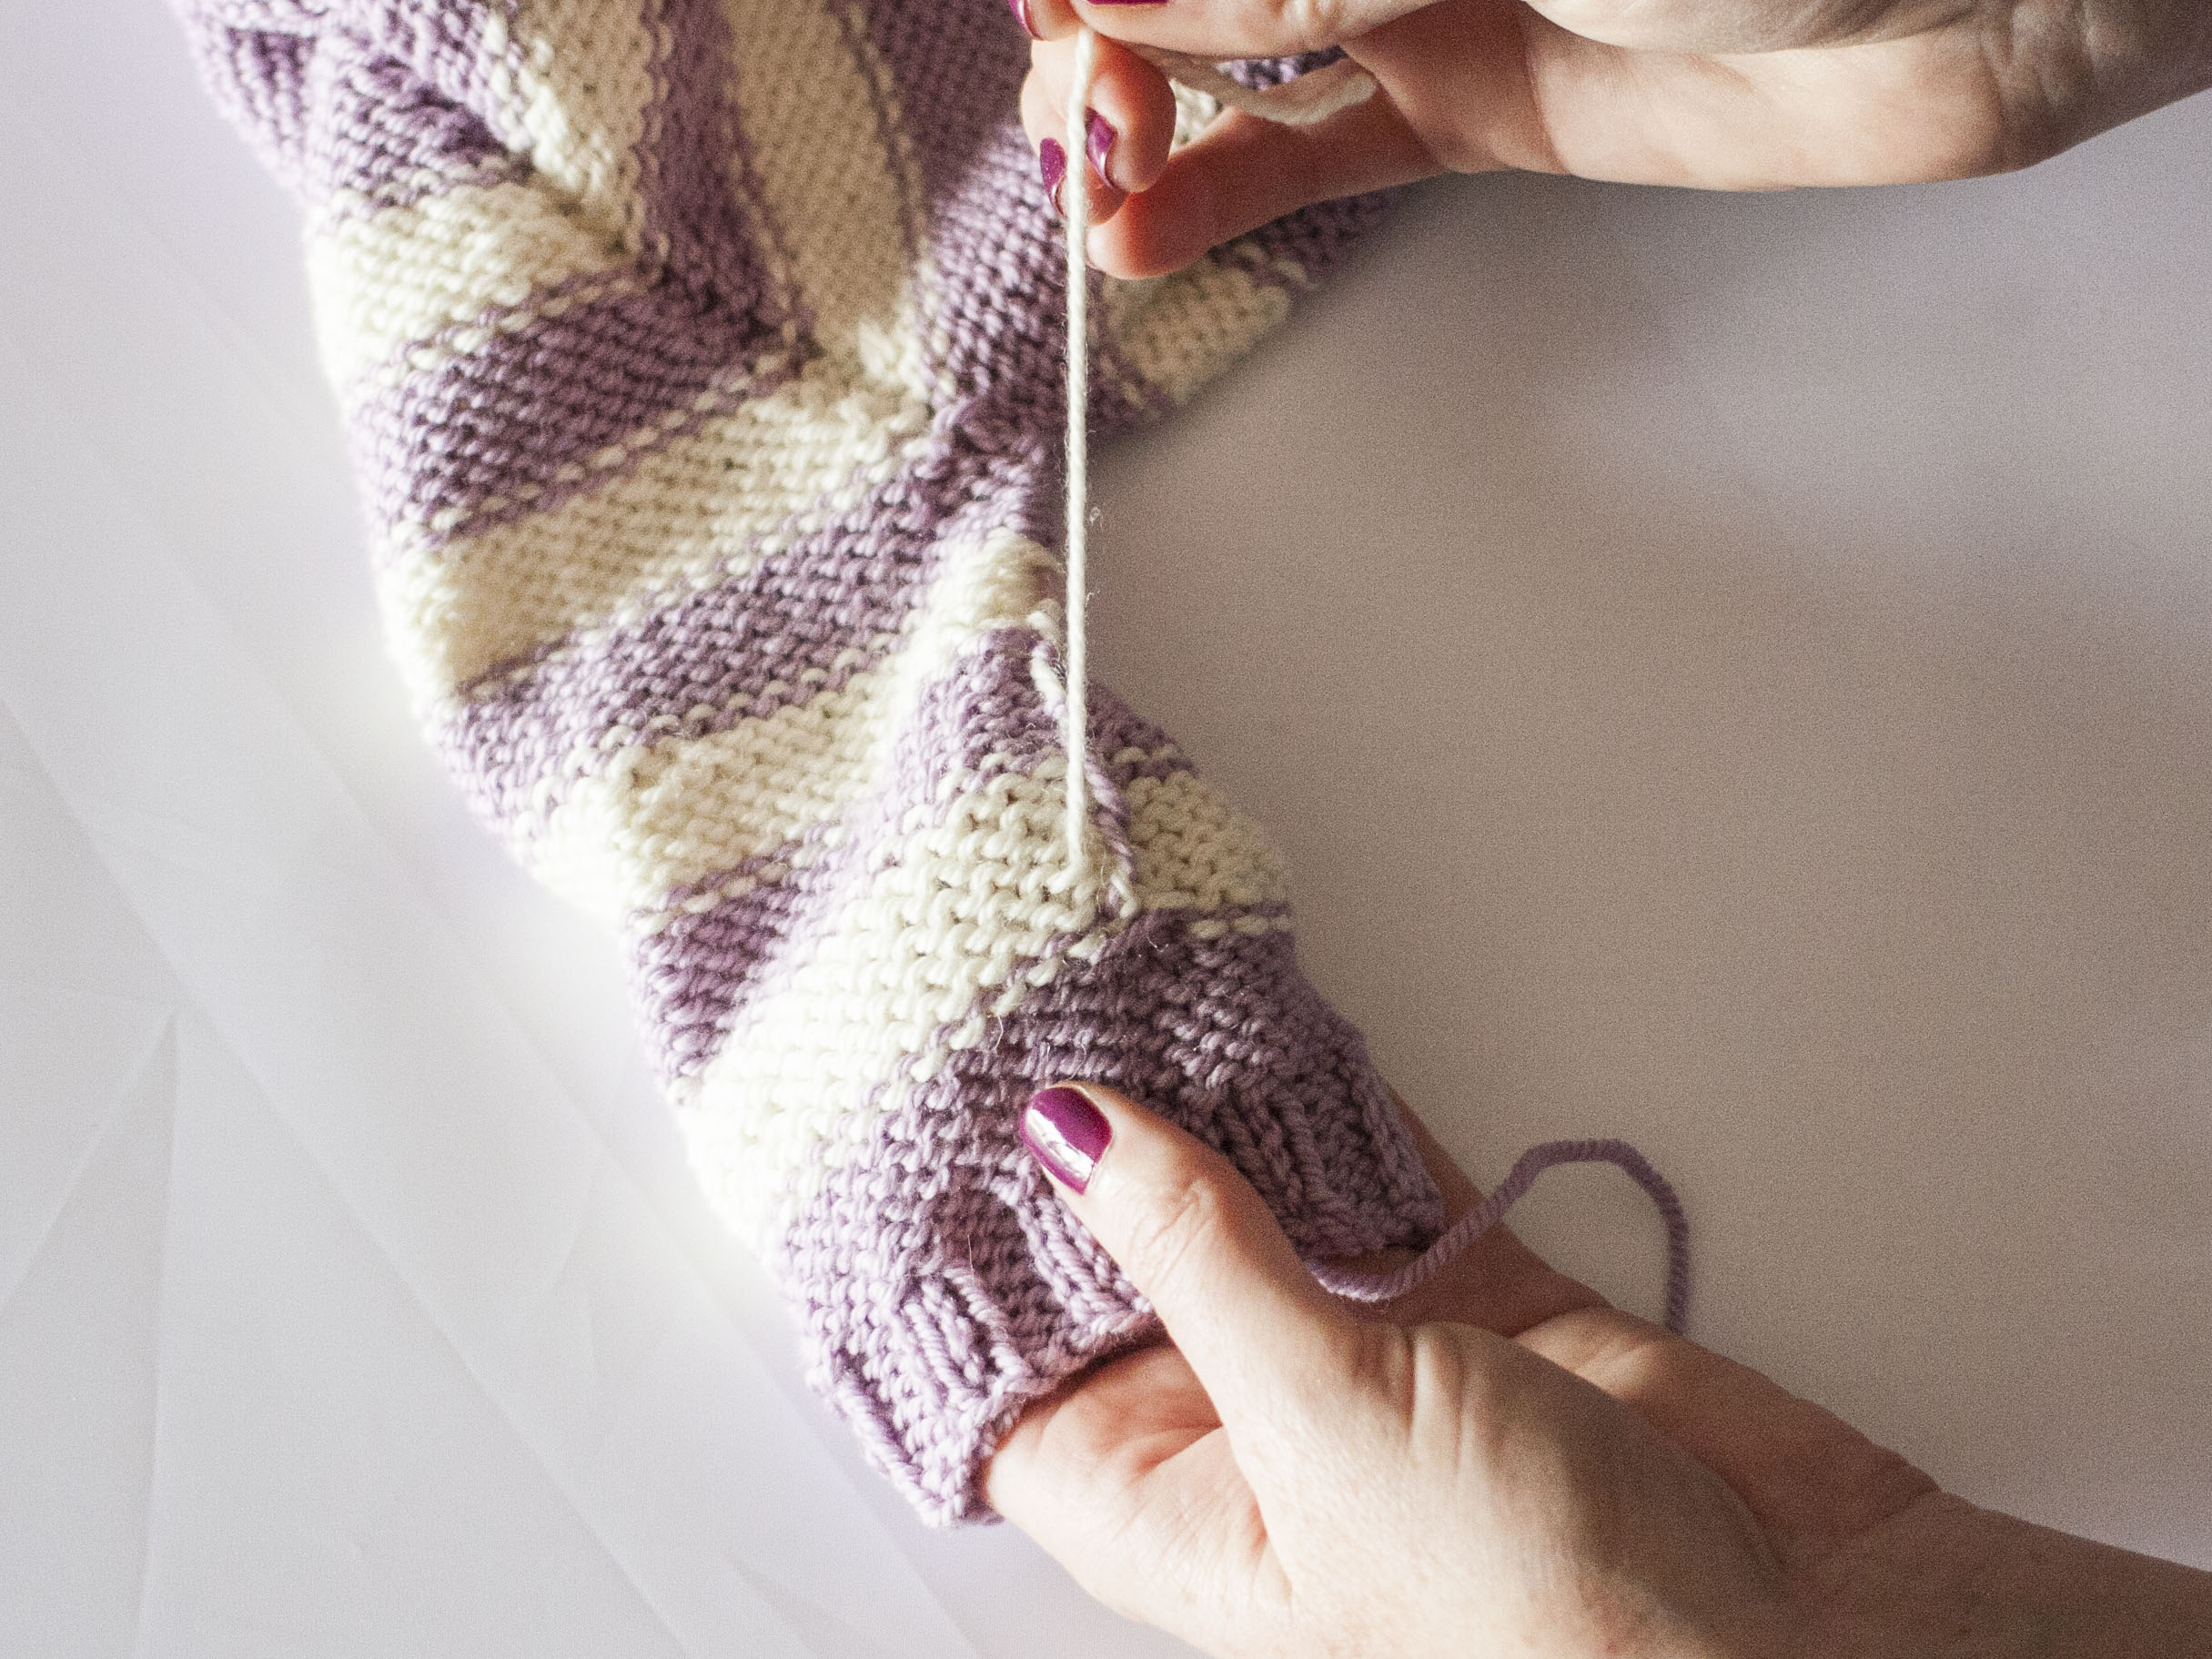 Weaving in yarn ends on a sweater